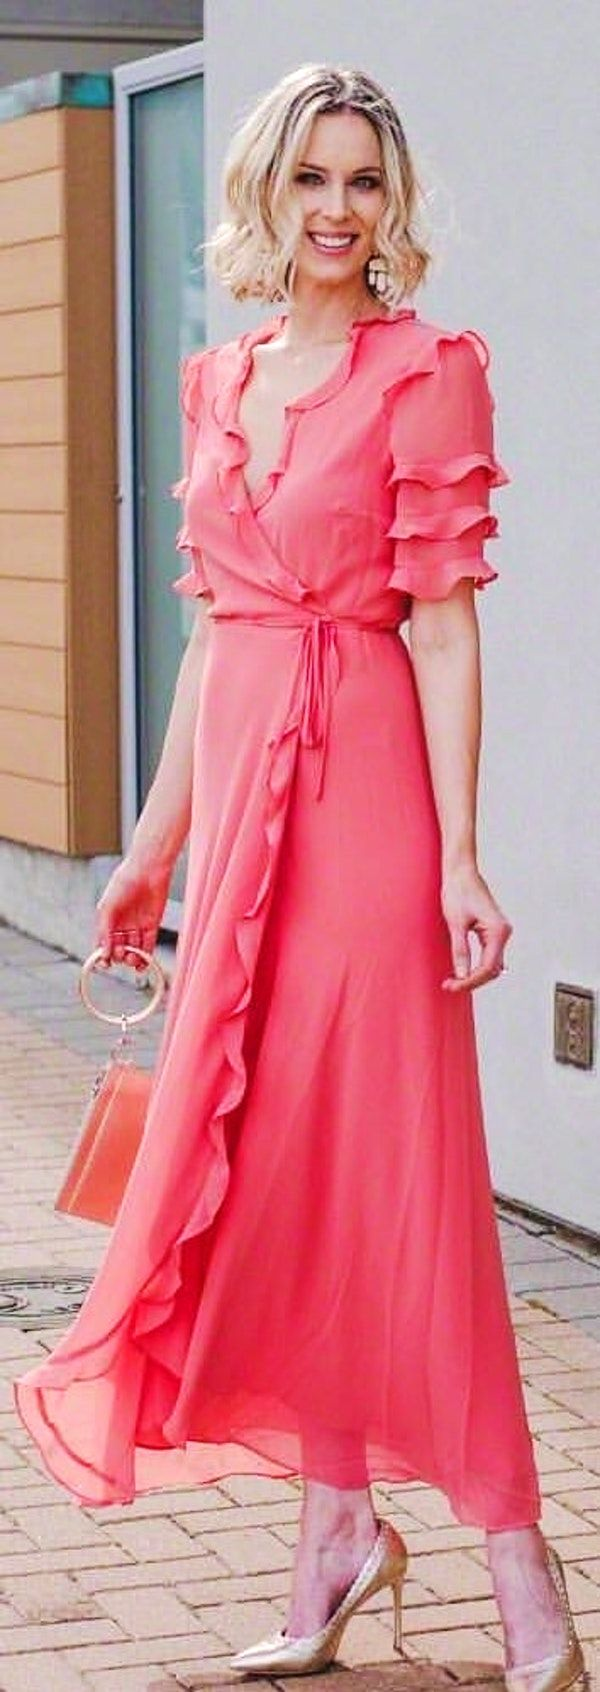 Formal pink dresses for women   Cute Spring Outfits To Copy Now  Pink dresses Spring and Woman